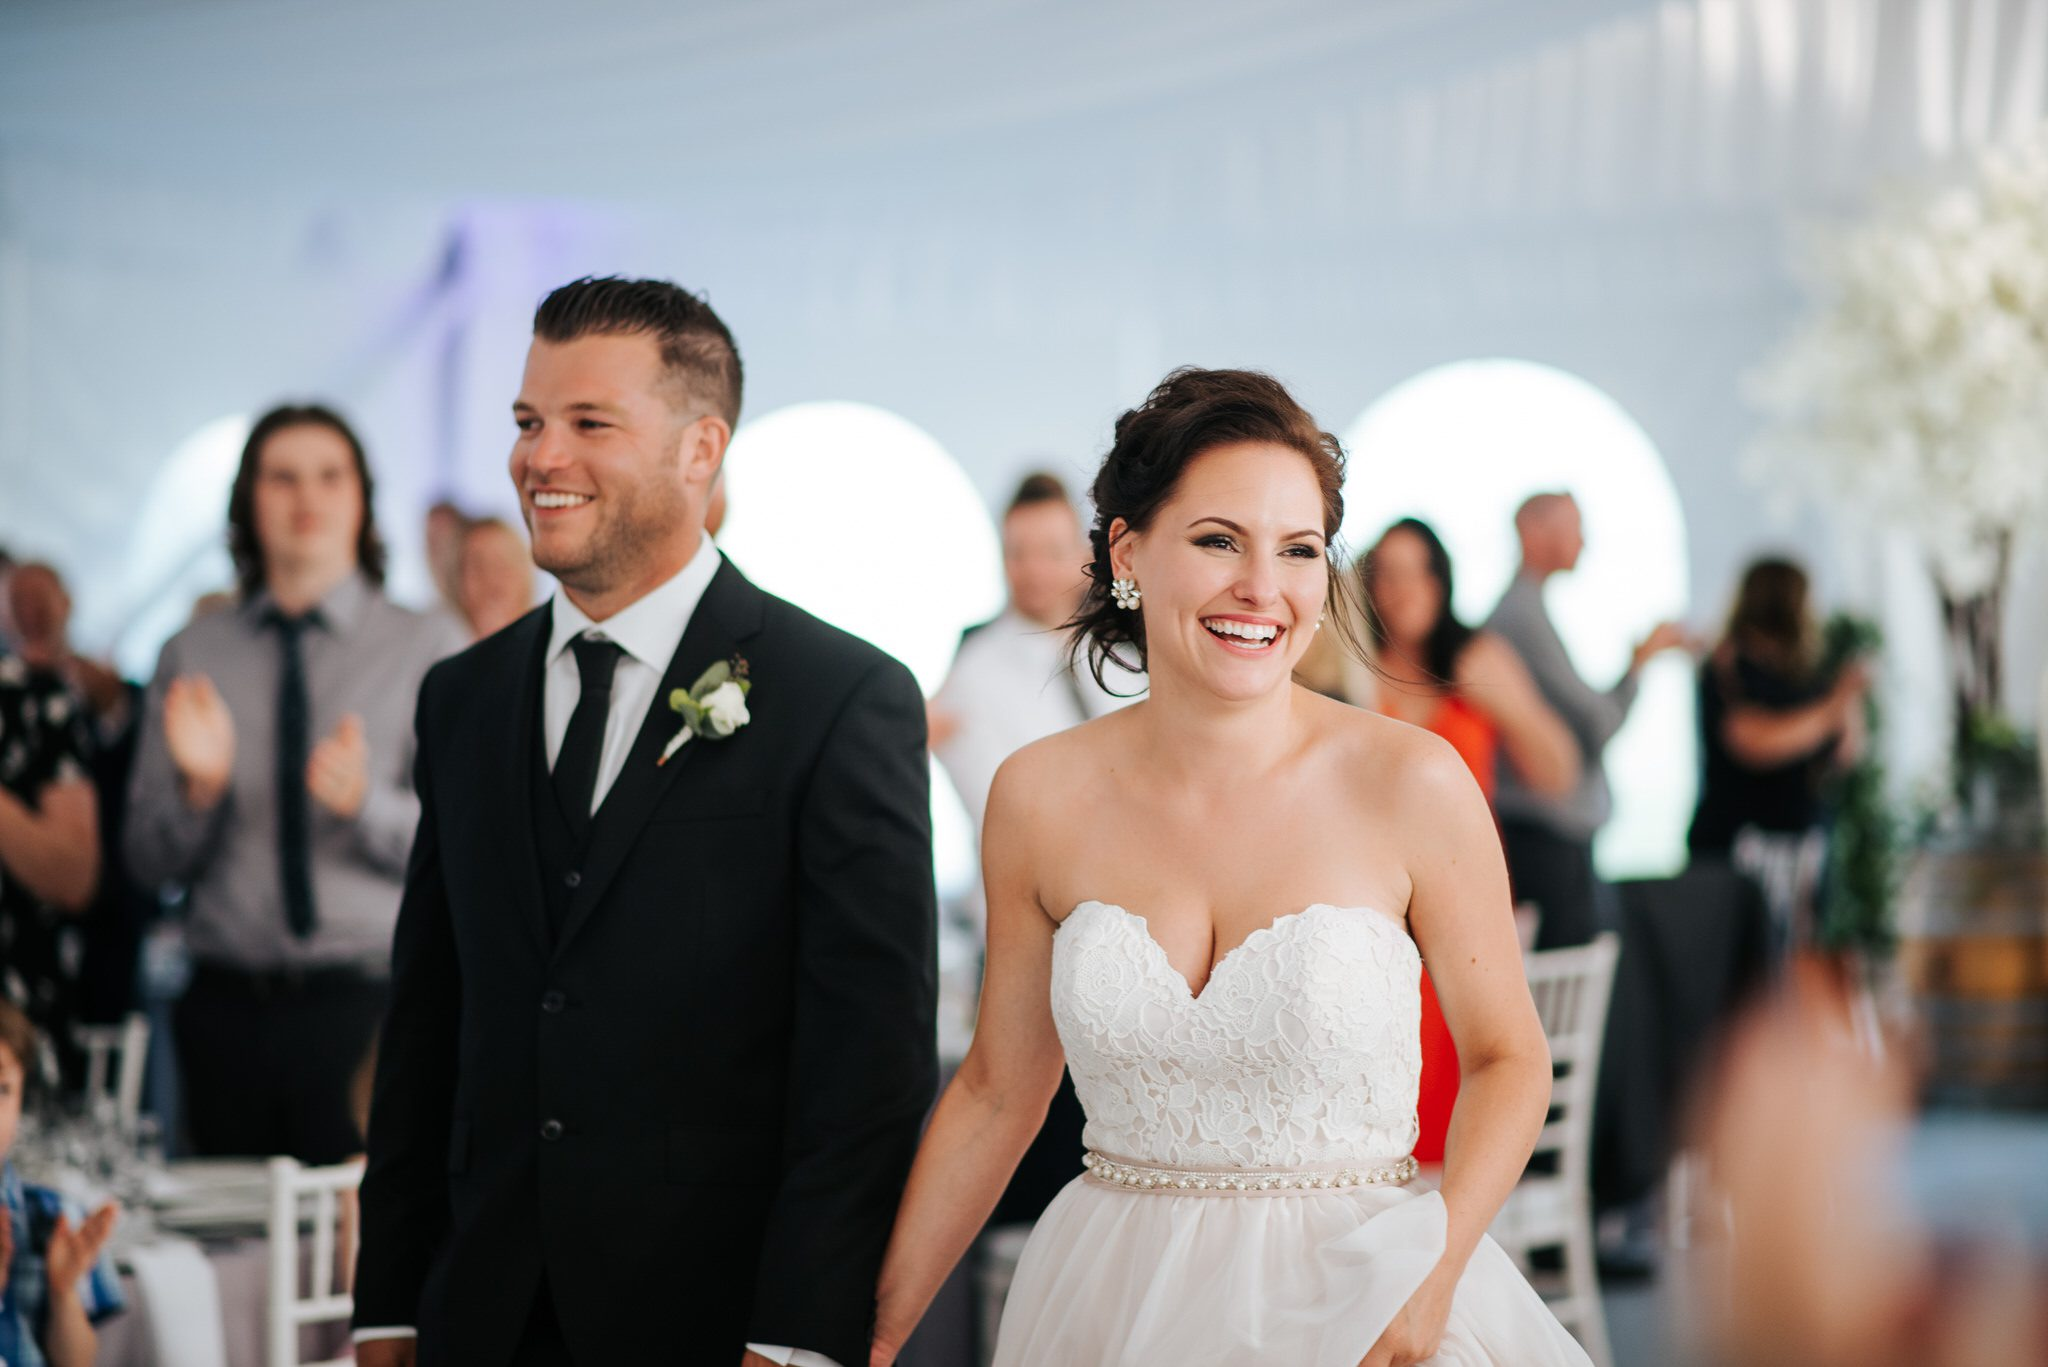 Bloomfield Gardens Wedding - bride and groom at reception